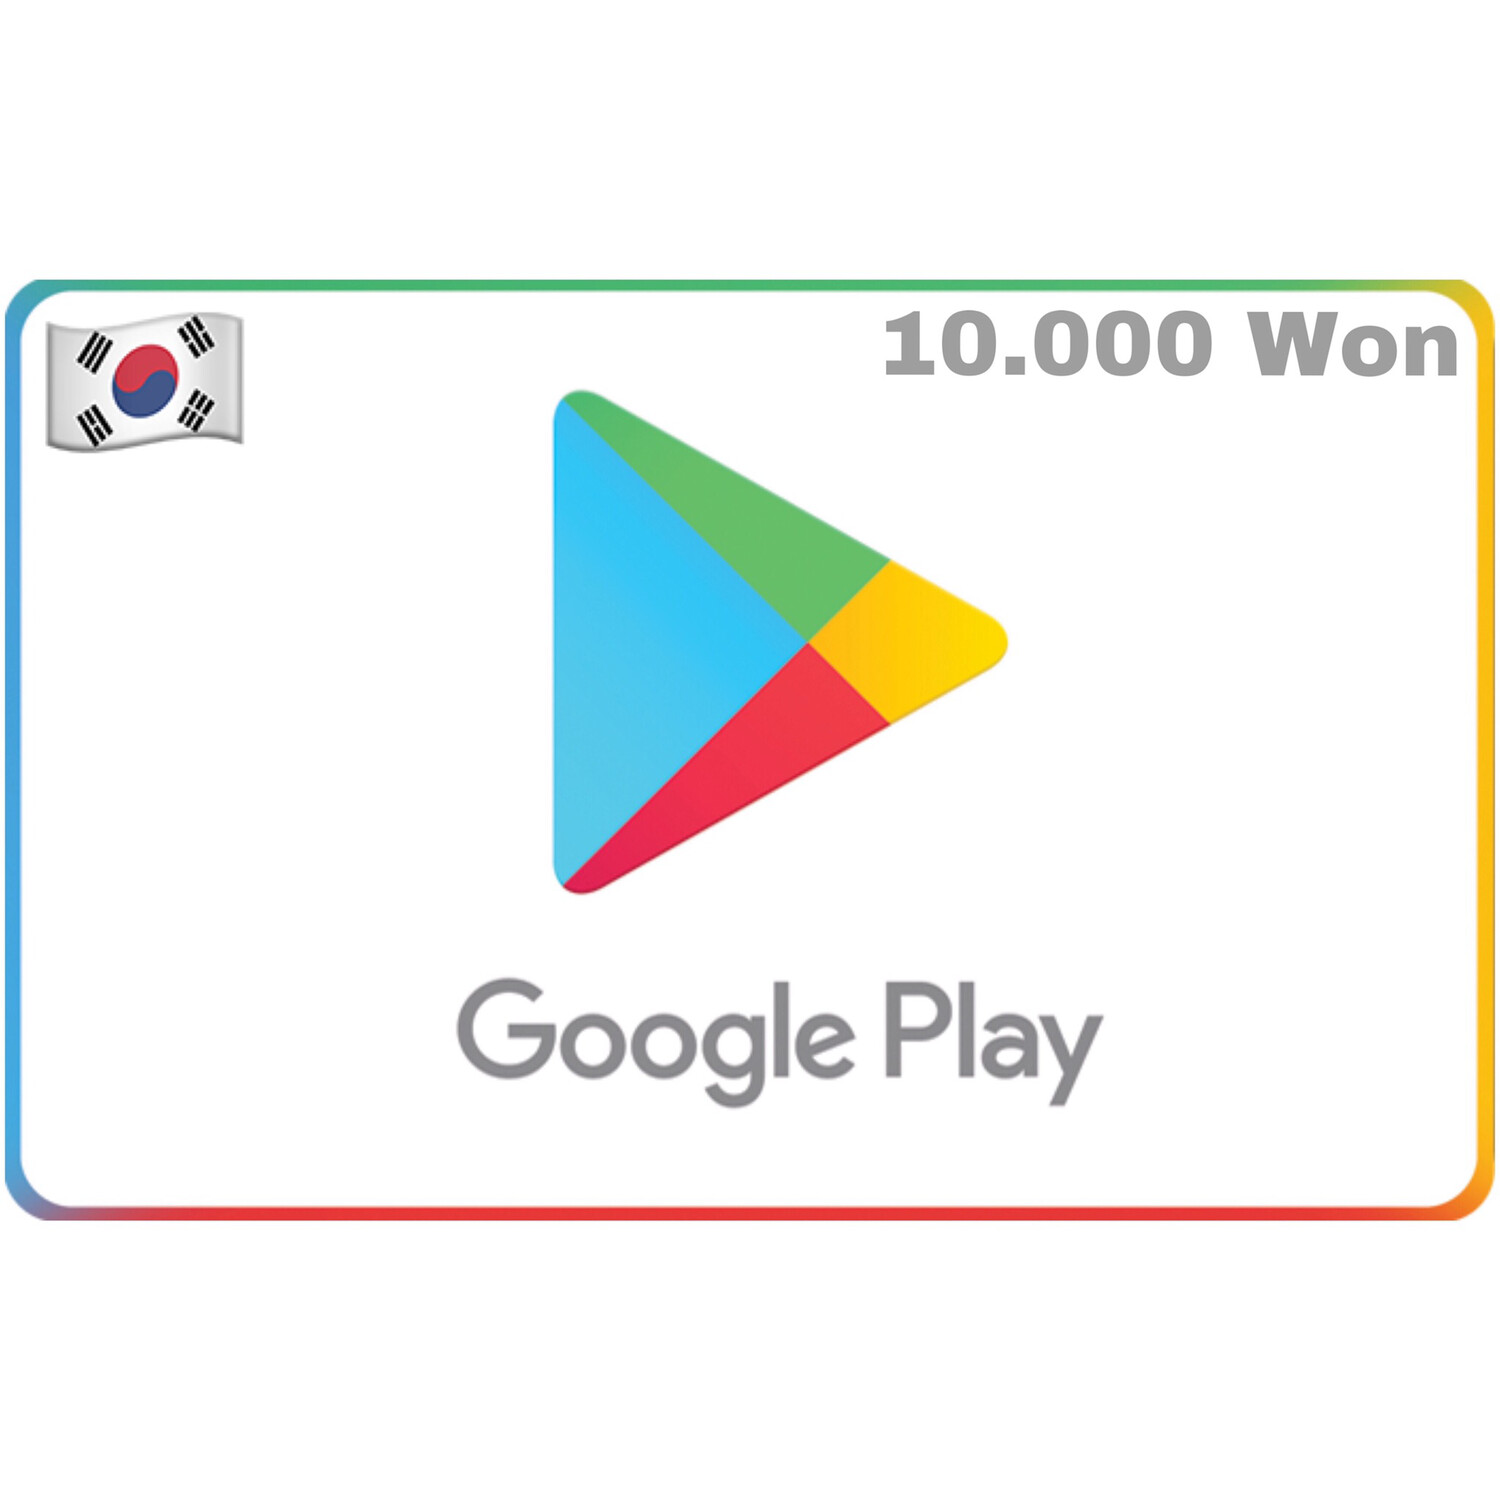 Google Play Korea 10,000 Won